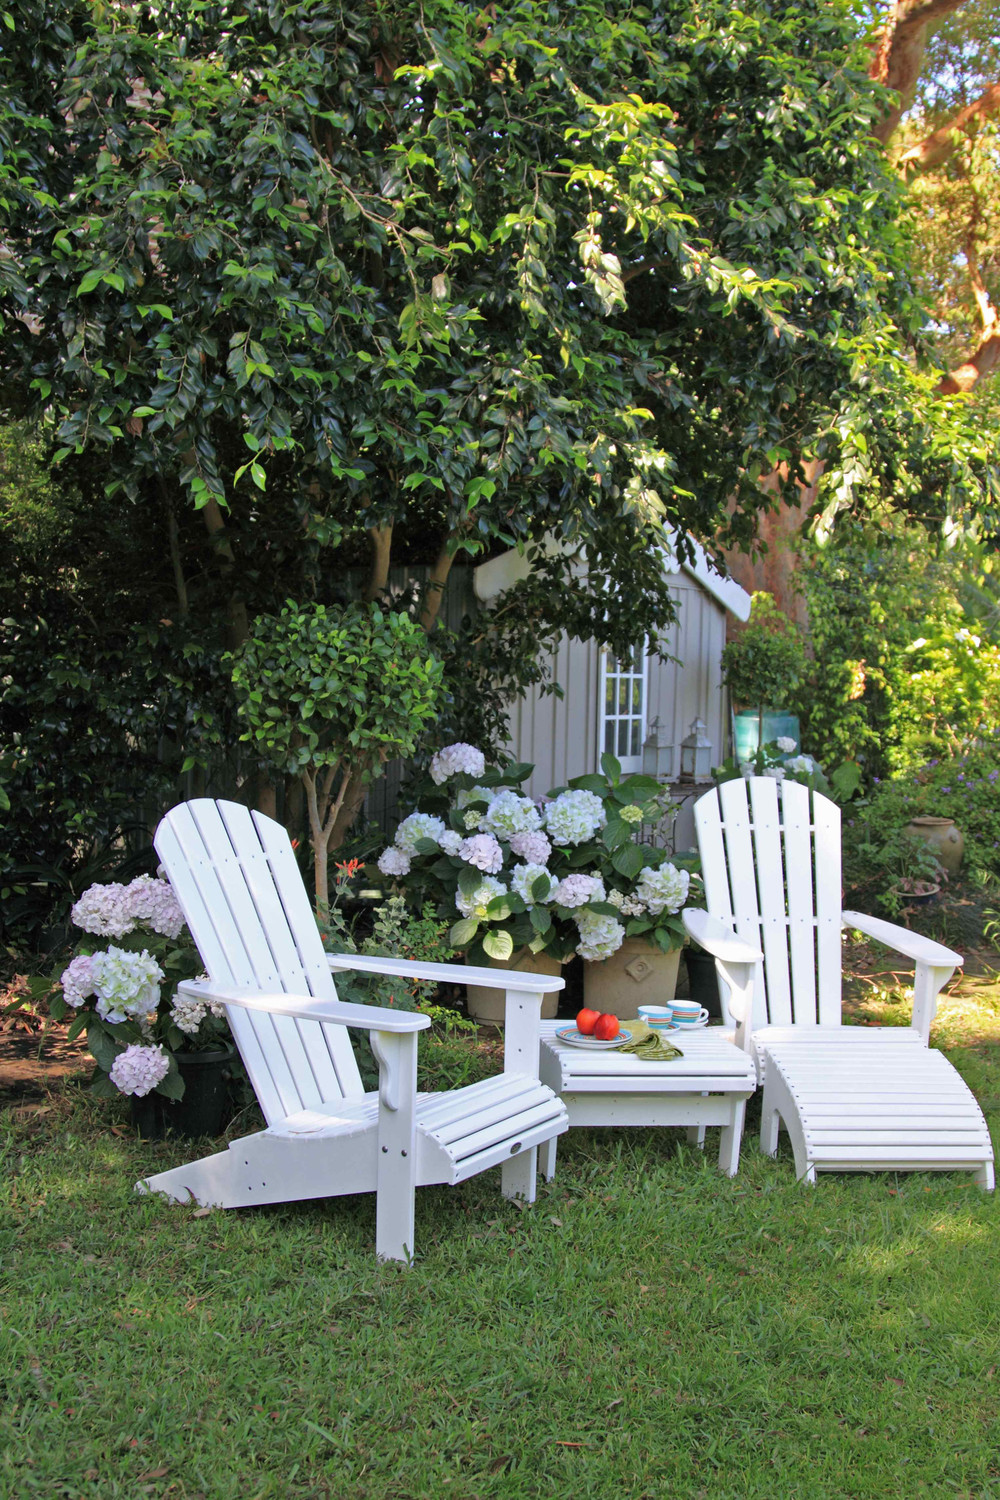 Adirondack chairs in garden